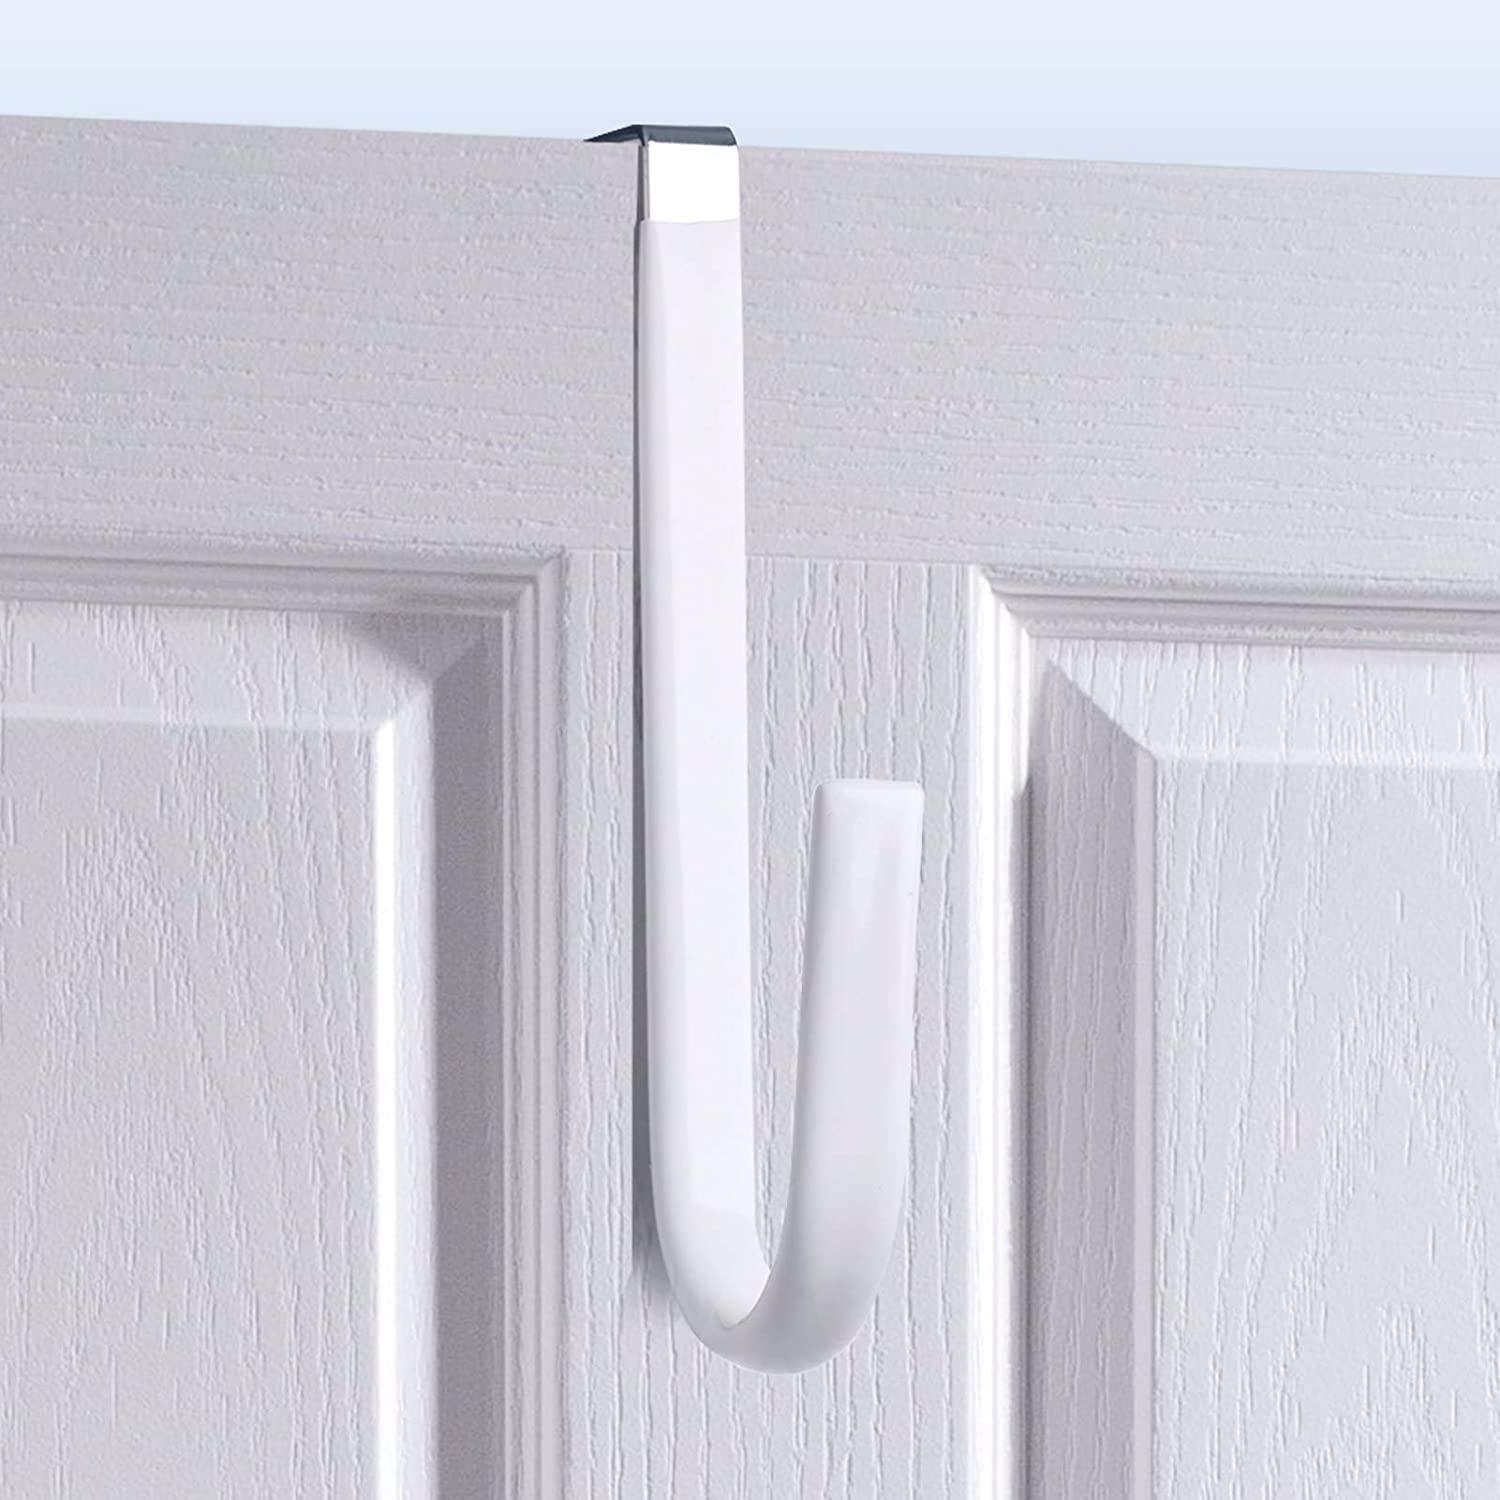 Over Door Hook White - 4Pack Surface Preve online shop Soft Design to Fresno Mall Rubber